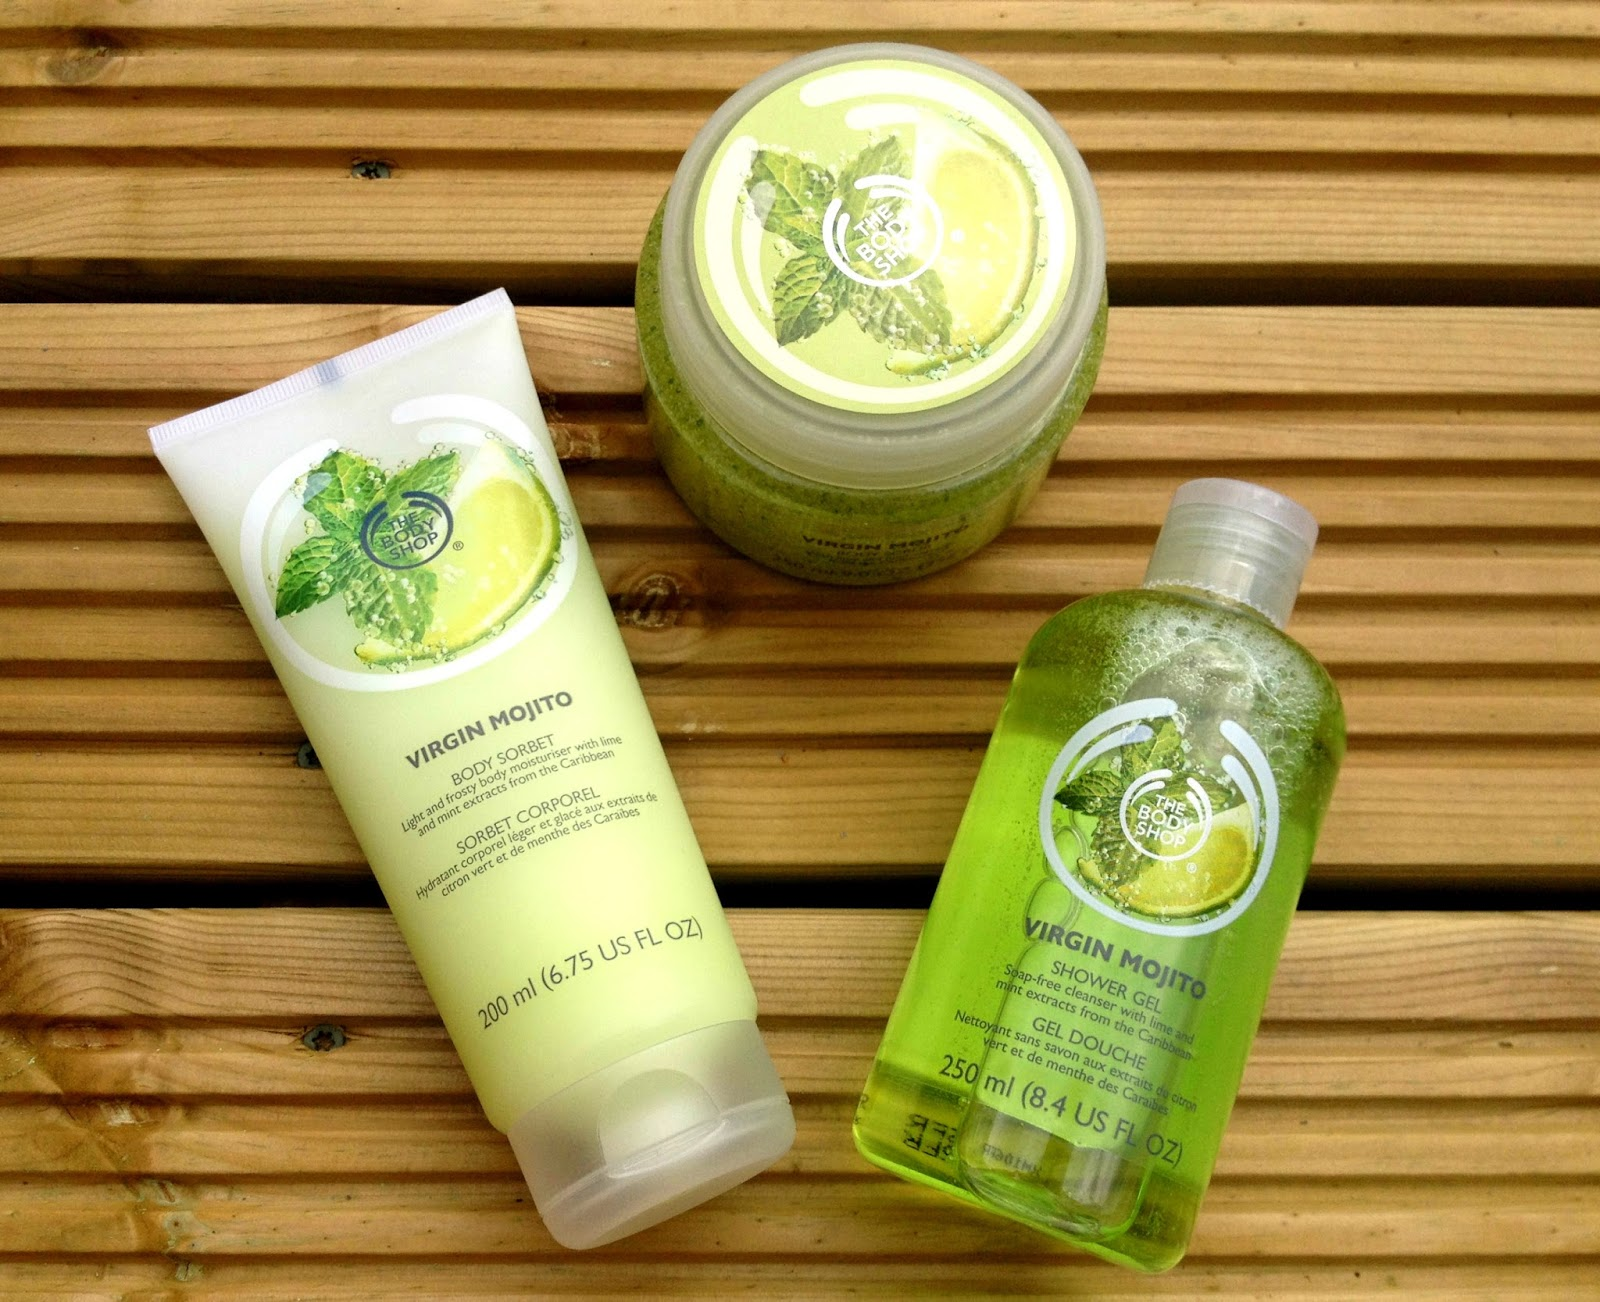 The Body Shop Virgin Mojito Review